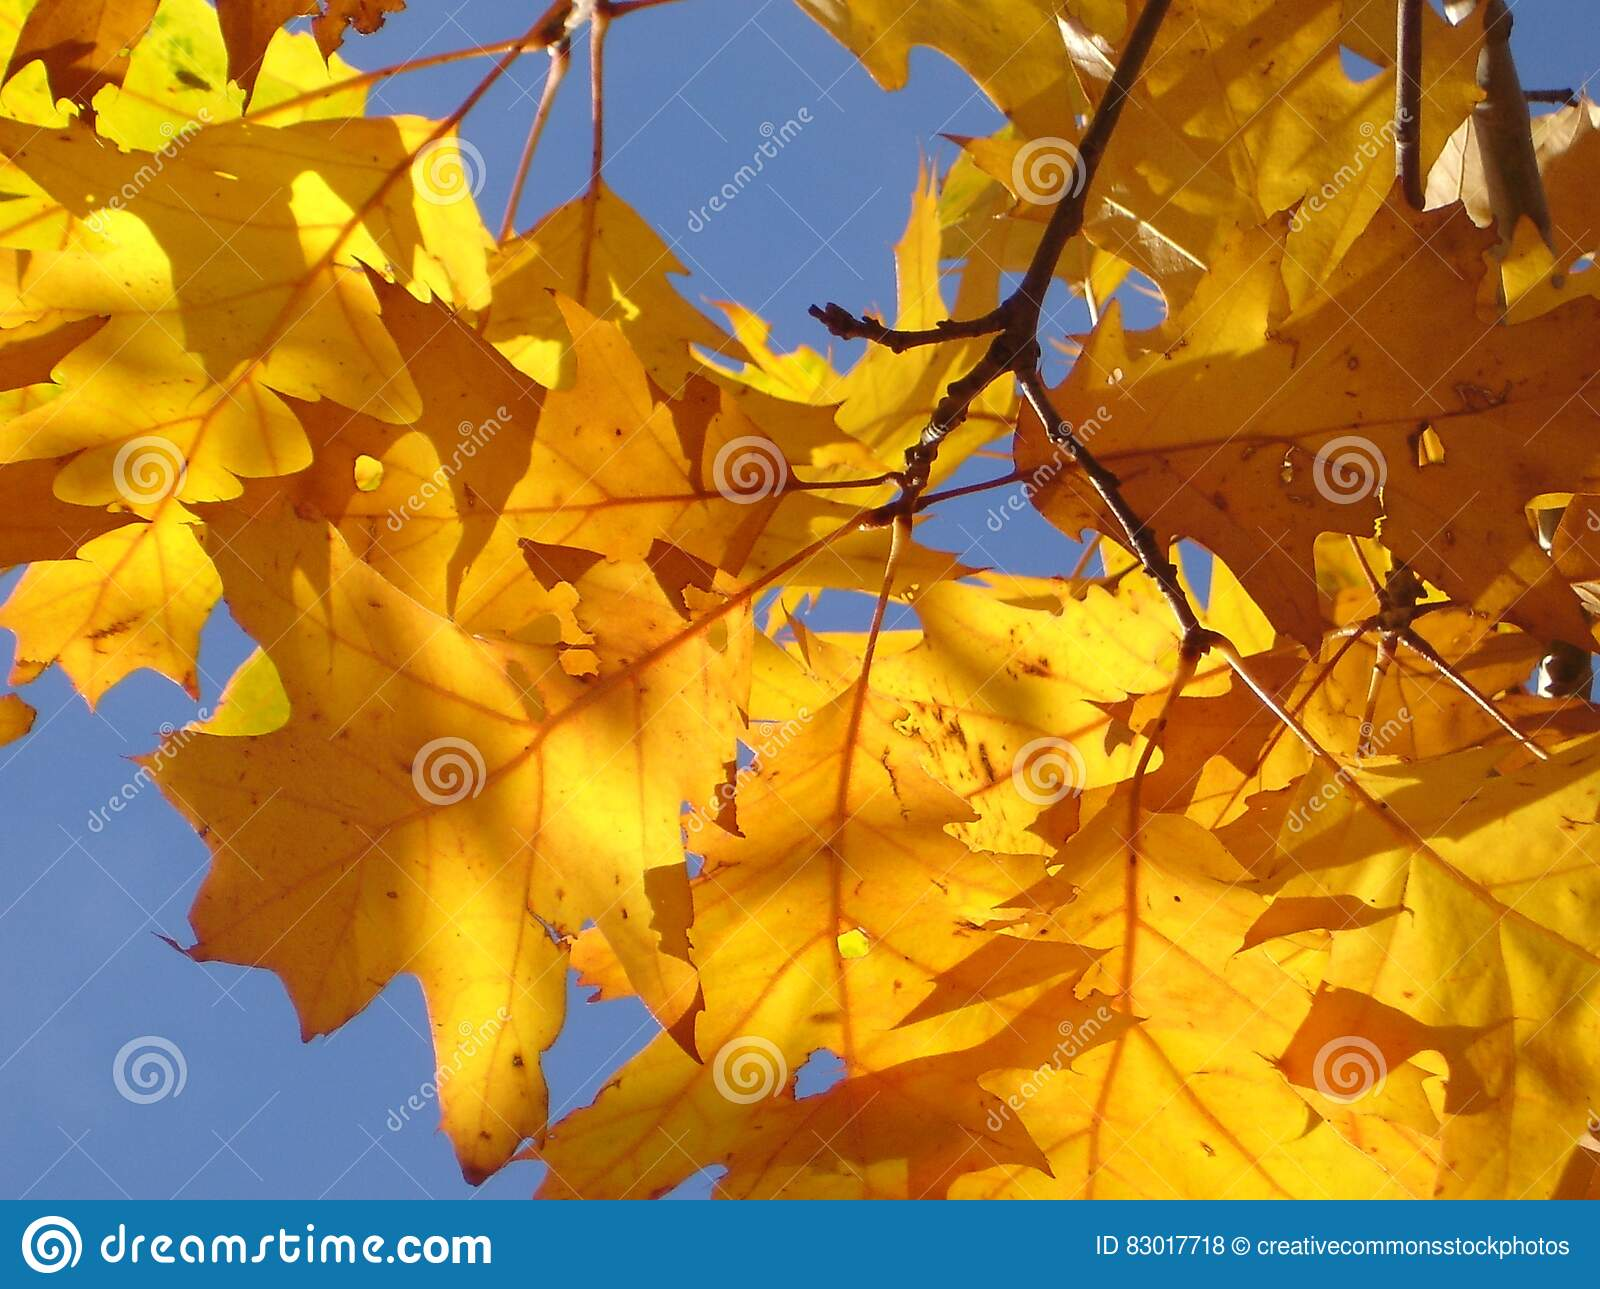 Download Photo Of Yellow Leaves Under Sunny Day Stock Photo - Image of up, angle: 83017718